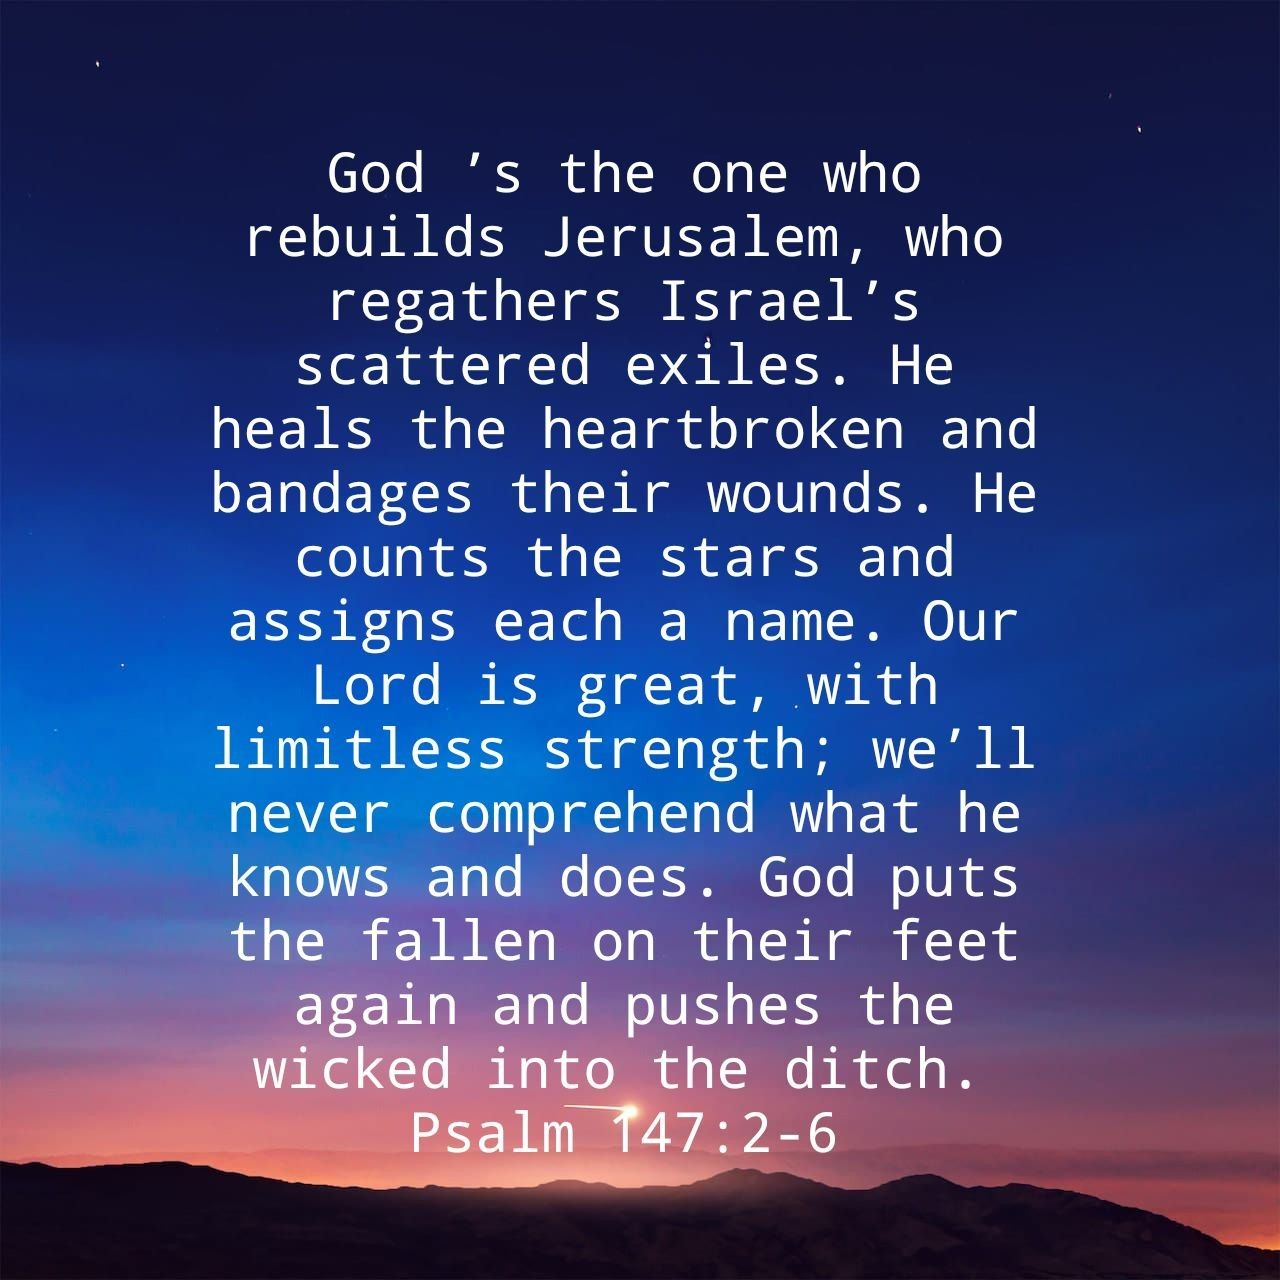 What The Bible Says About Healing A Broken Heart